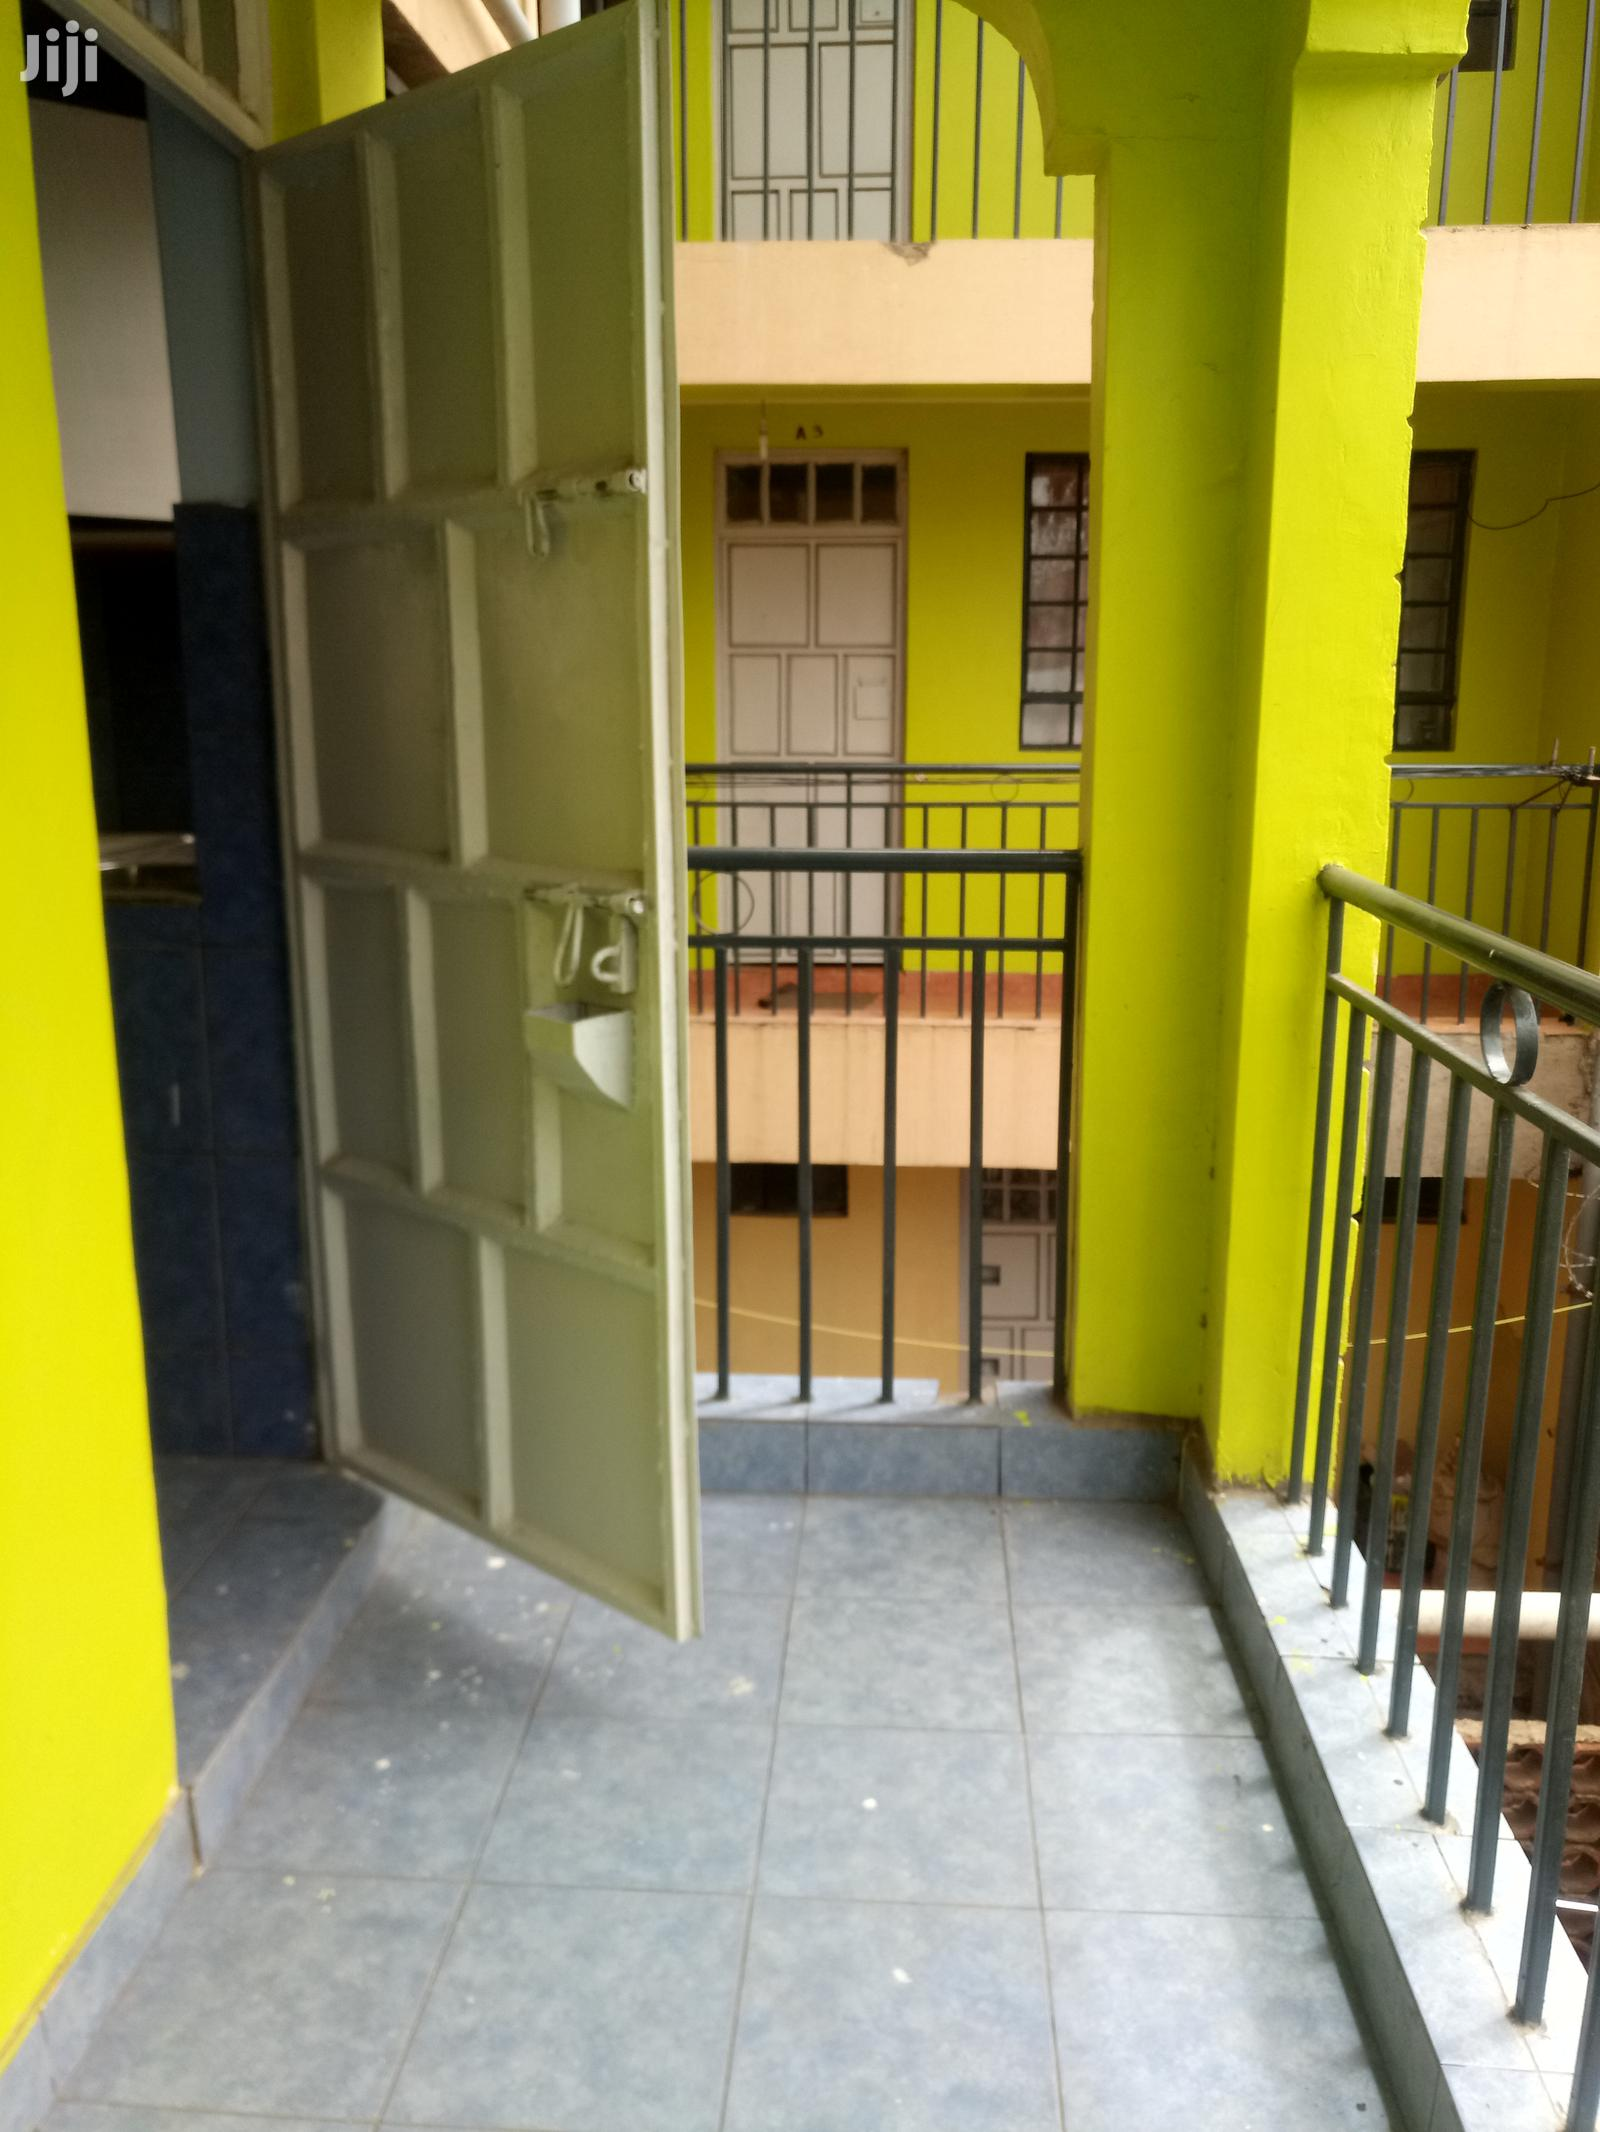 Two Bed Roomed House Near Tuskys Supermarket.